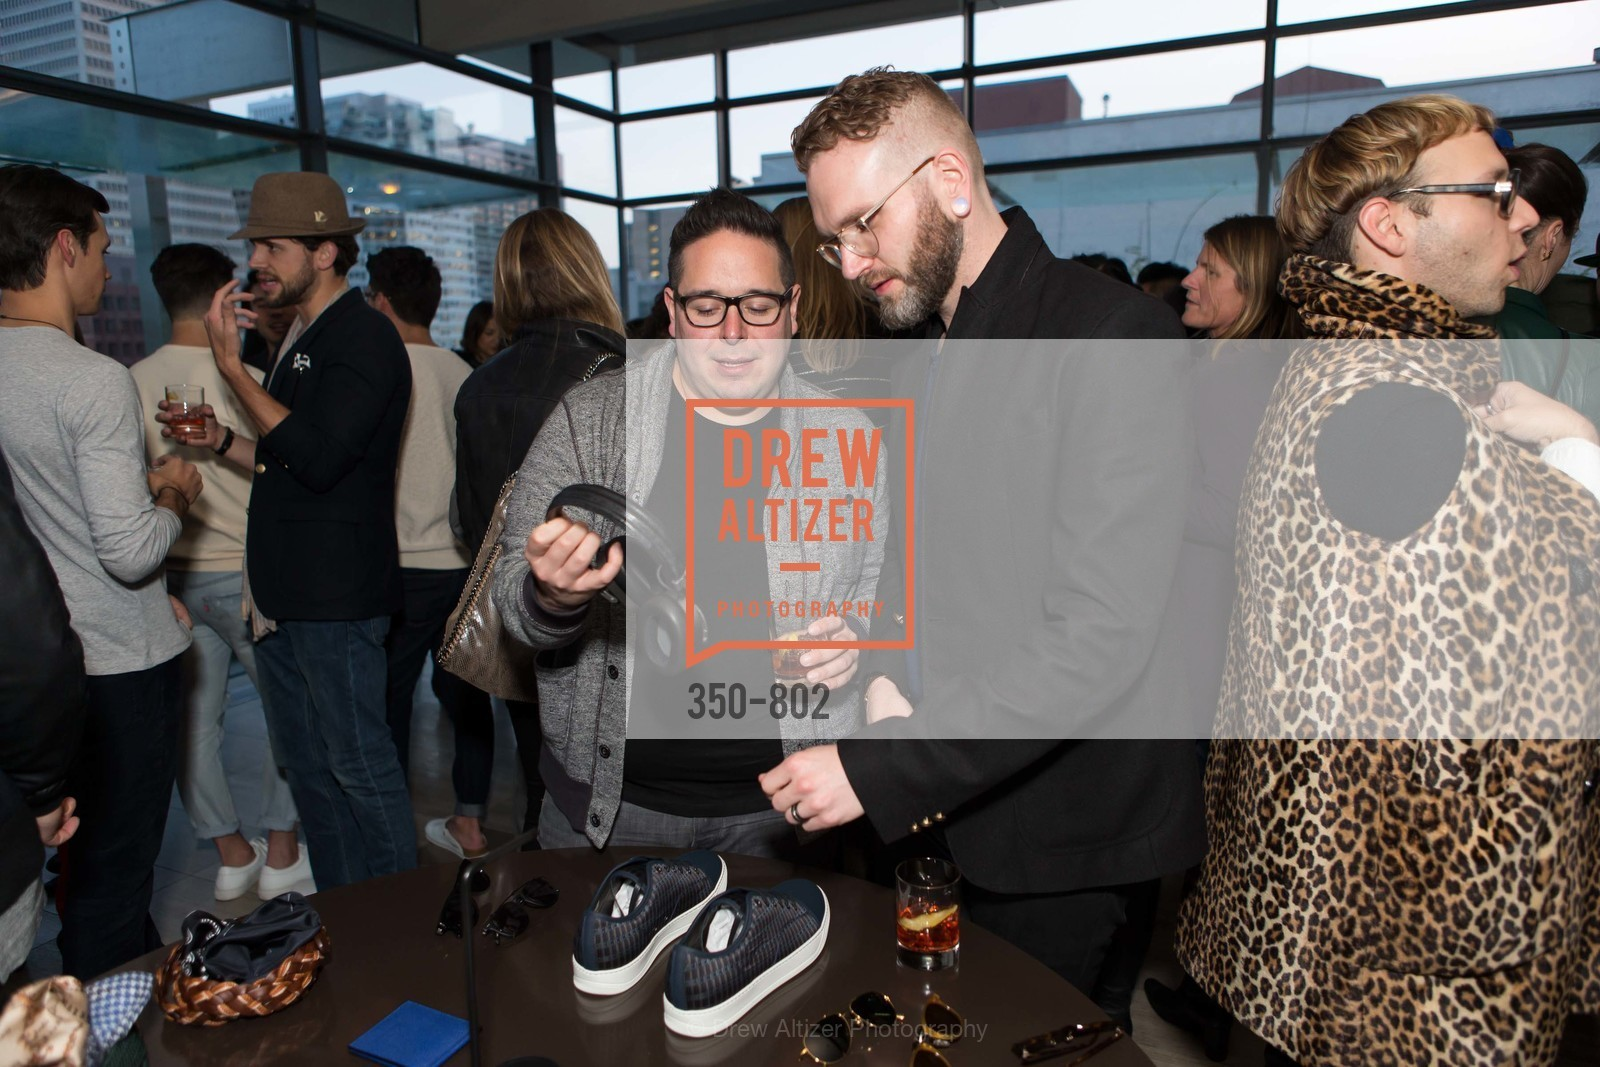 Extras, MR PORTER Celebrate The San Francisco Issue of The Journal, April 23rd, 2015, Photo,Drew Altizer, Drew Altizer Photography, full-service agency, private events, San Francisco photographer, photographer california